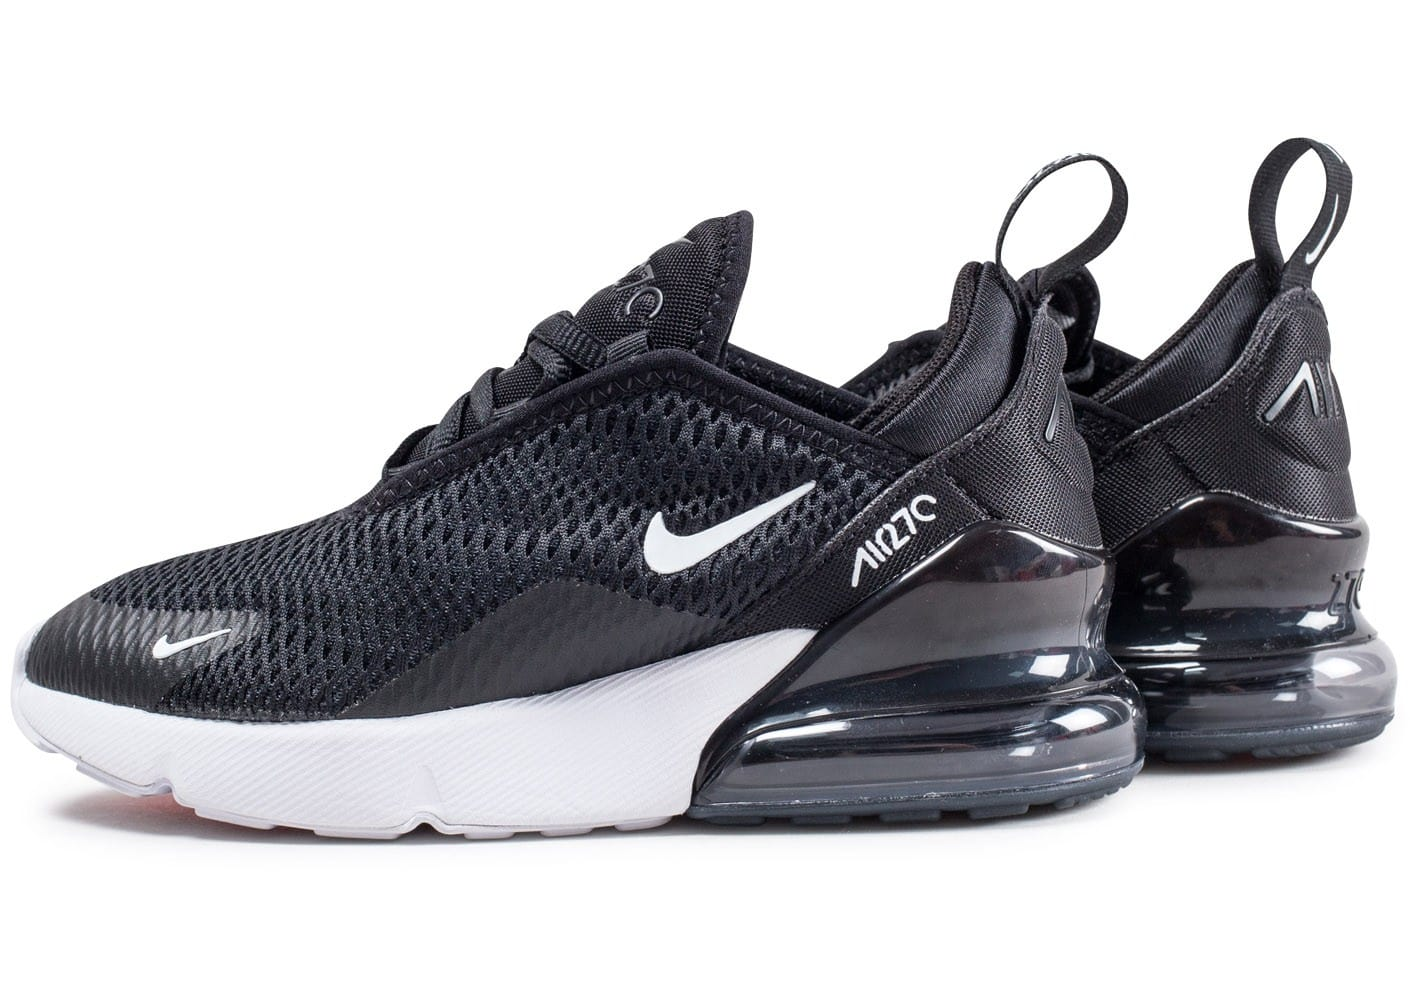 nike air max 270 enfant noire et blanche chaussures enfant chausport. Black Bedroom Furniture Sets. Home Design Ideas